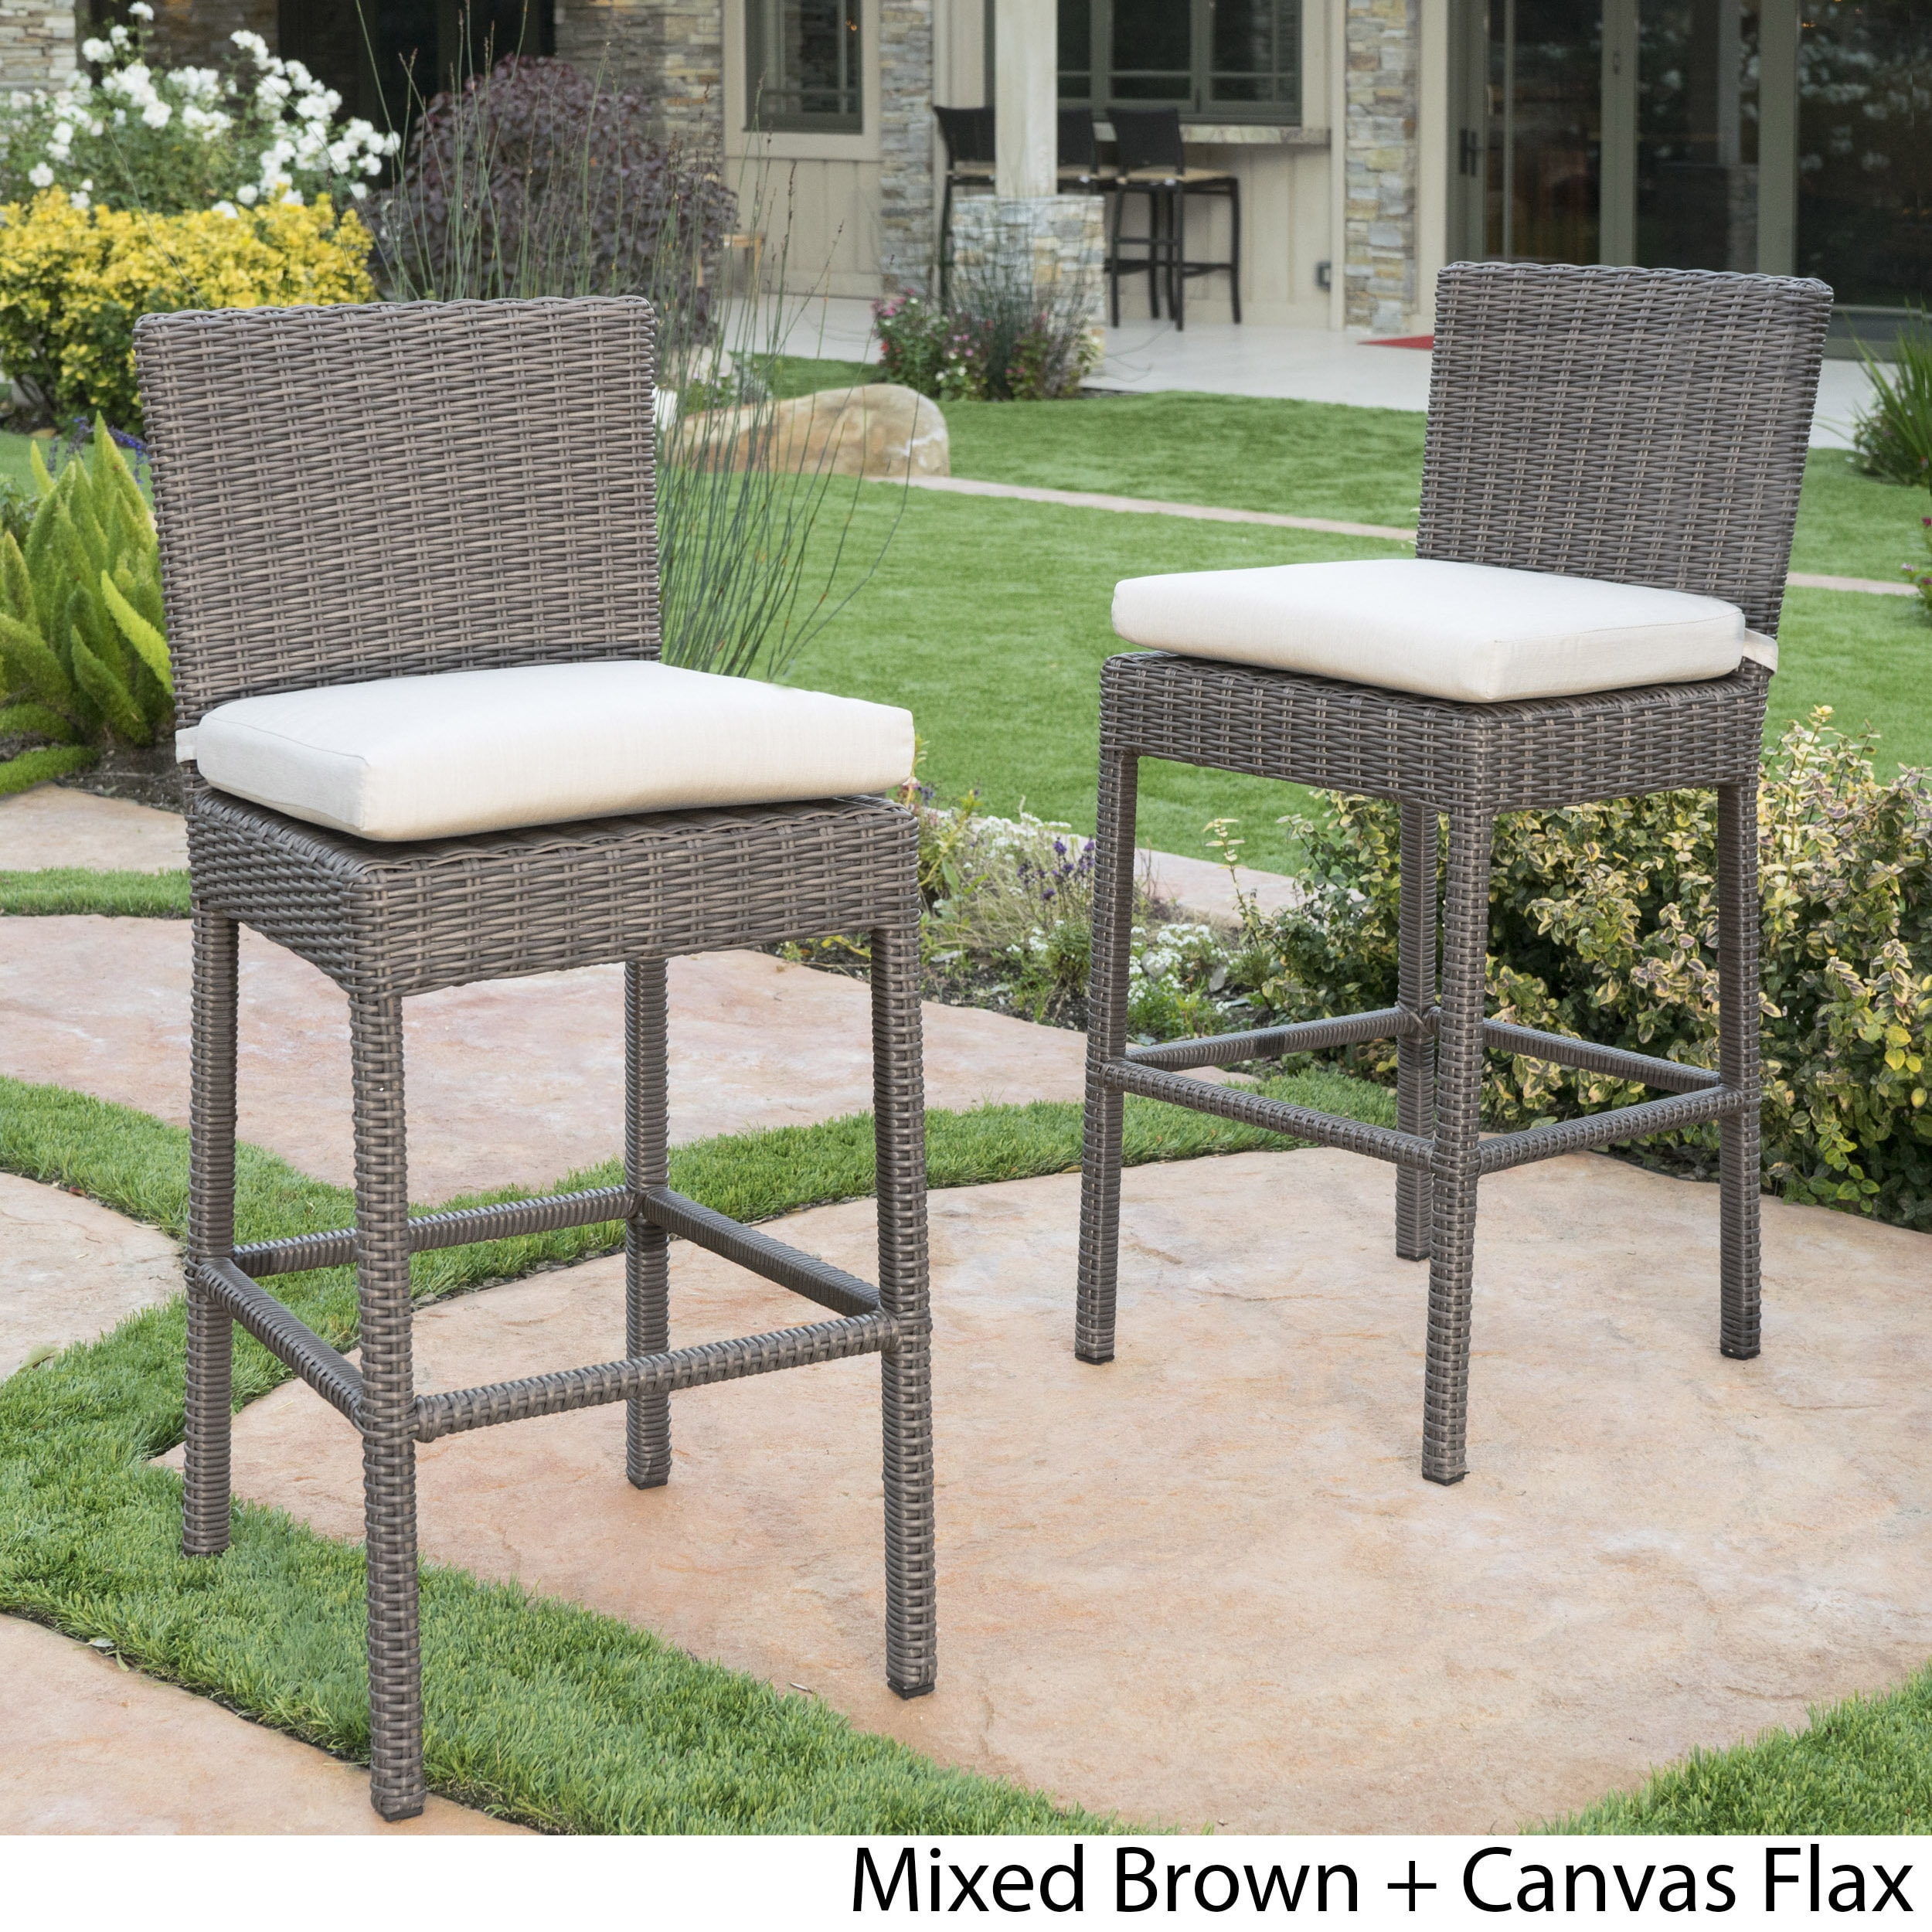 Shop Barcelona Outdoor Counter Stools with Sunbrella Cushion Set of